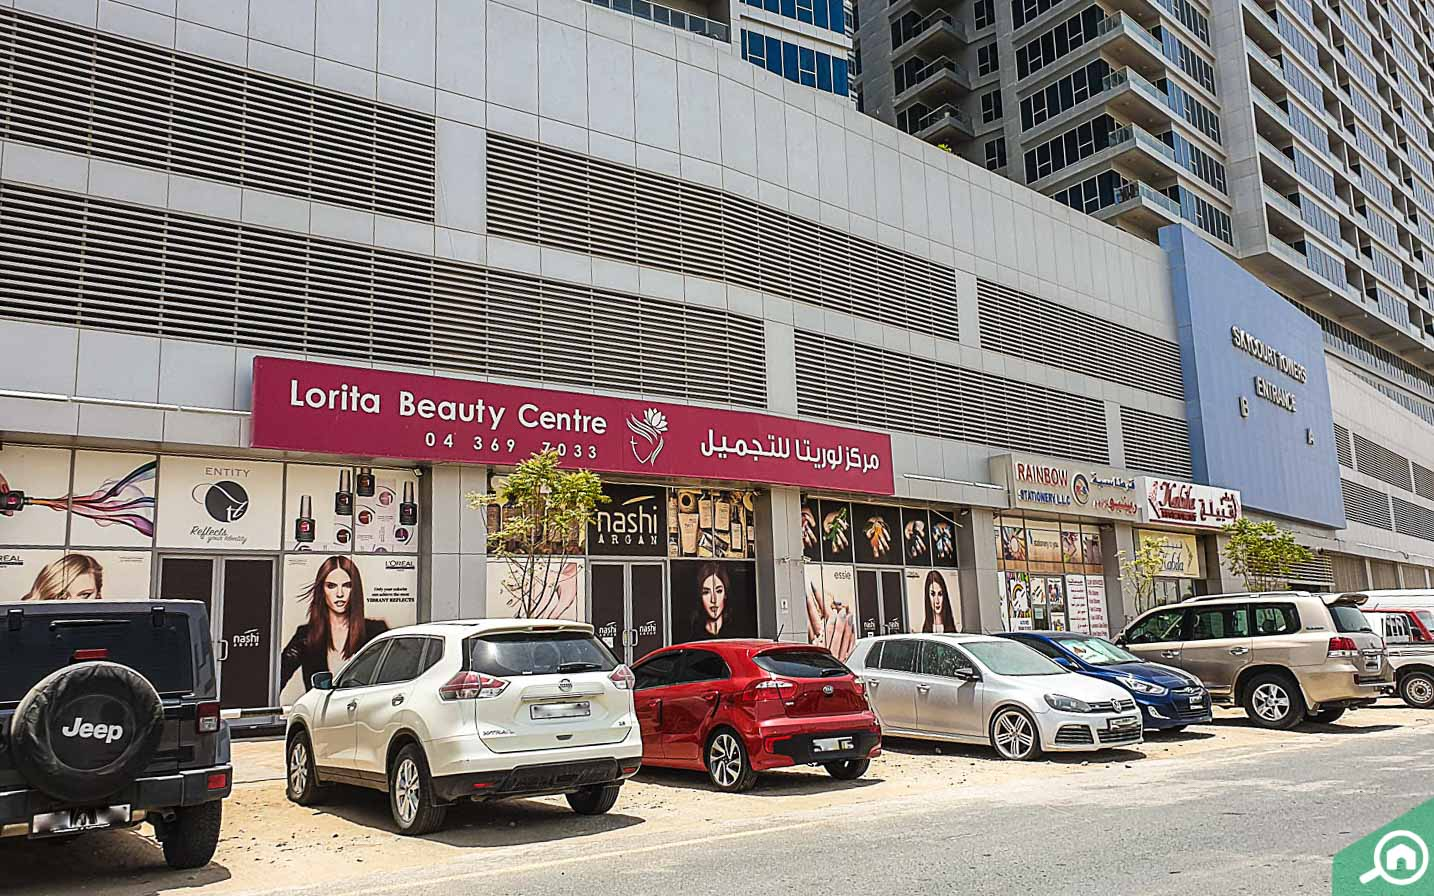 salons in Dubai Residence Complex